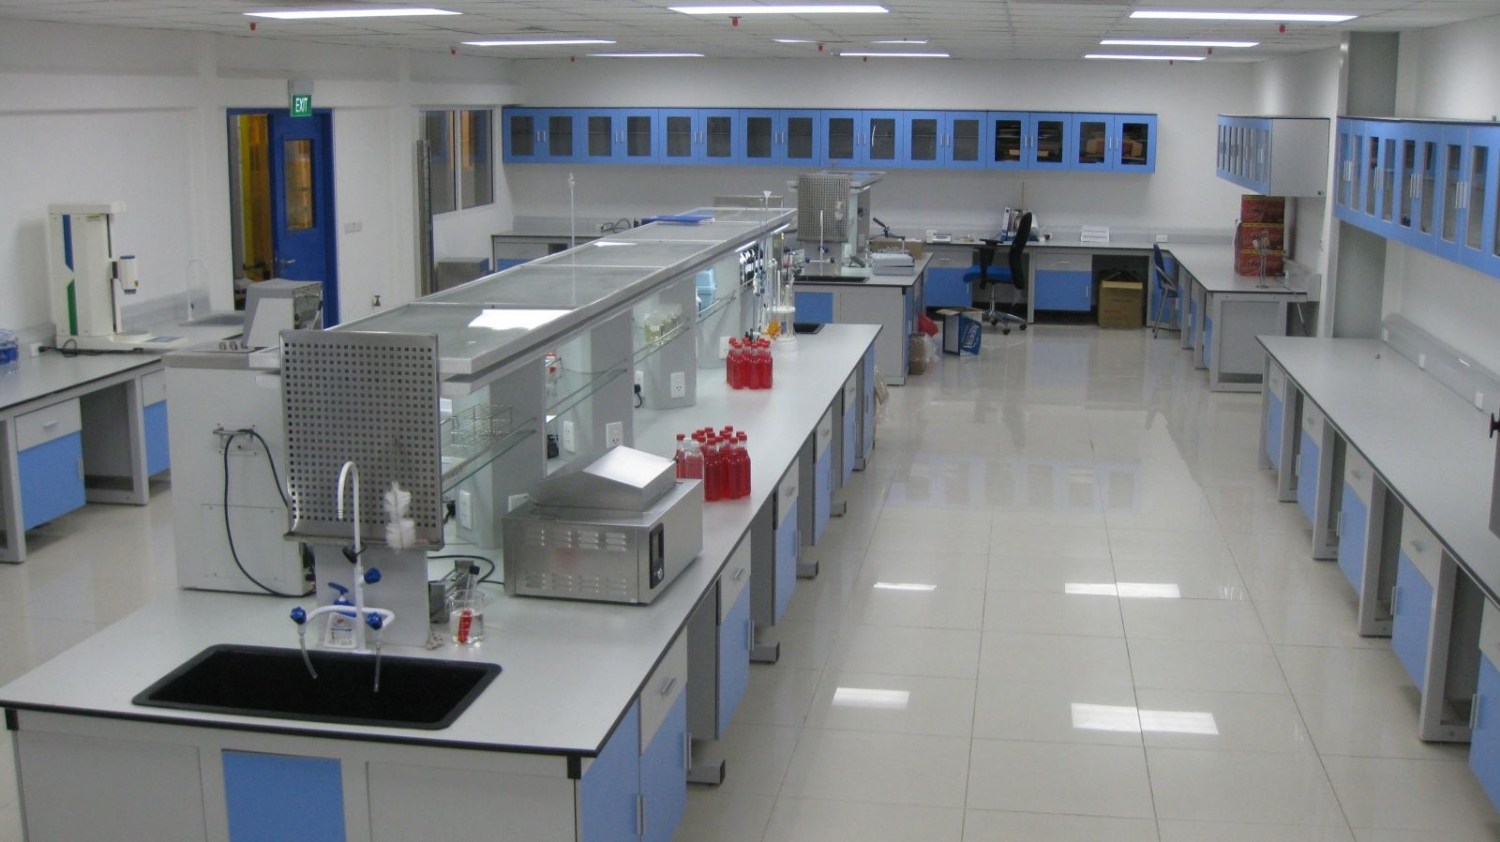 noi-that-phong-lab.jpg